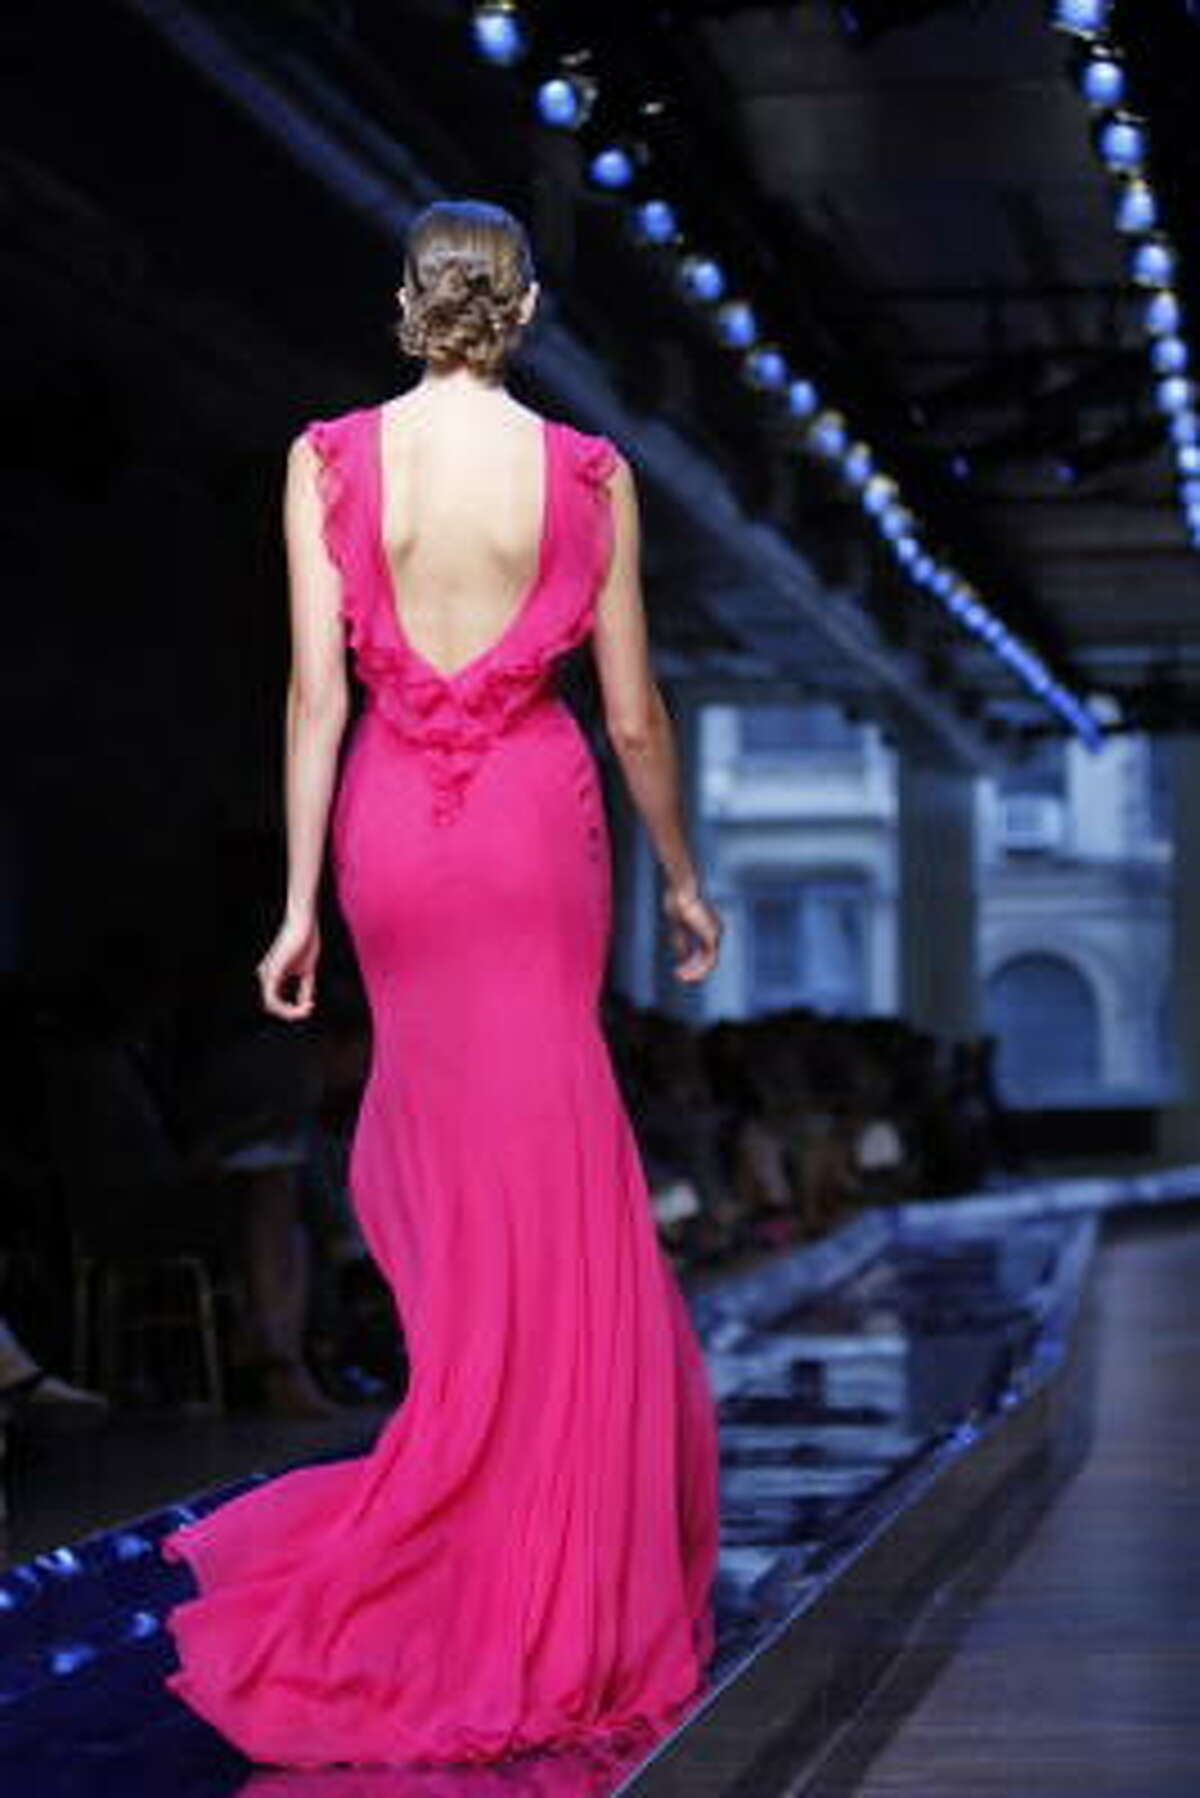 A backless dress from Jason Wu's Spring 2011 collection is modeled during Fashion Week in New York.